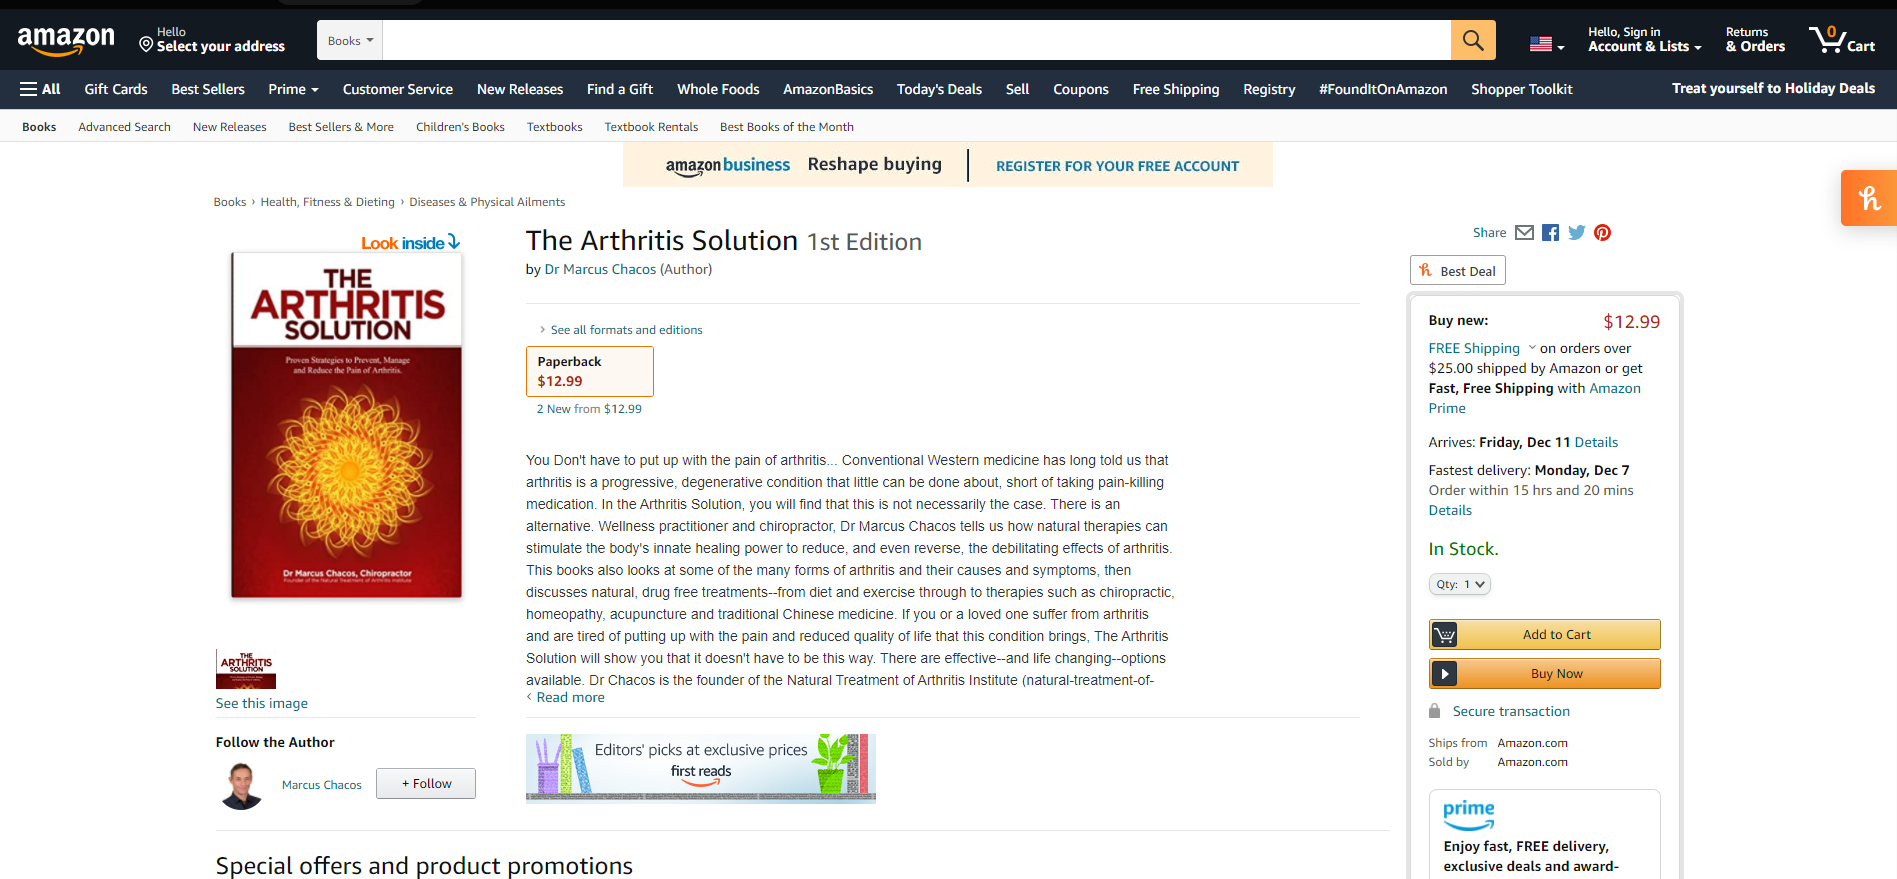 selling a chiropractic book on amazon